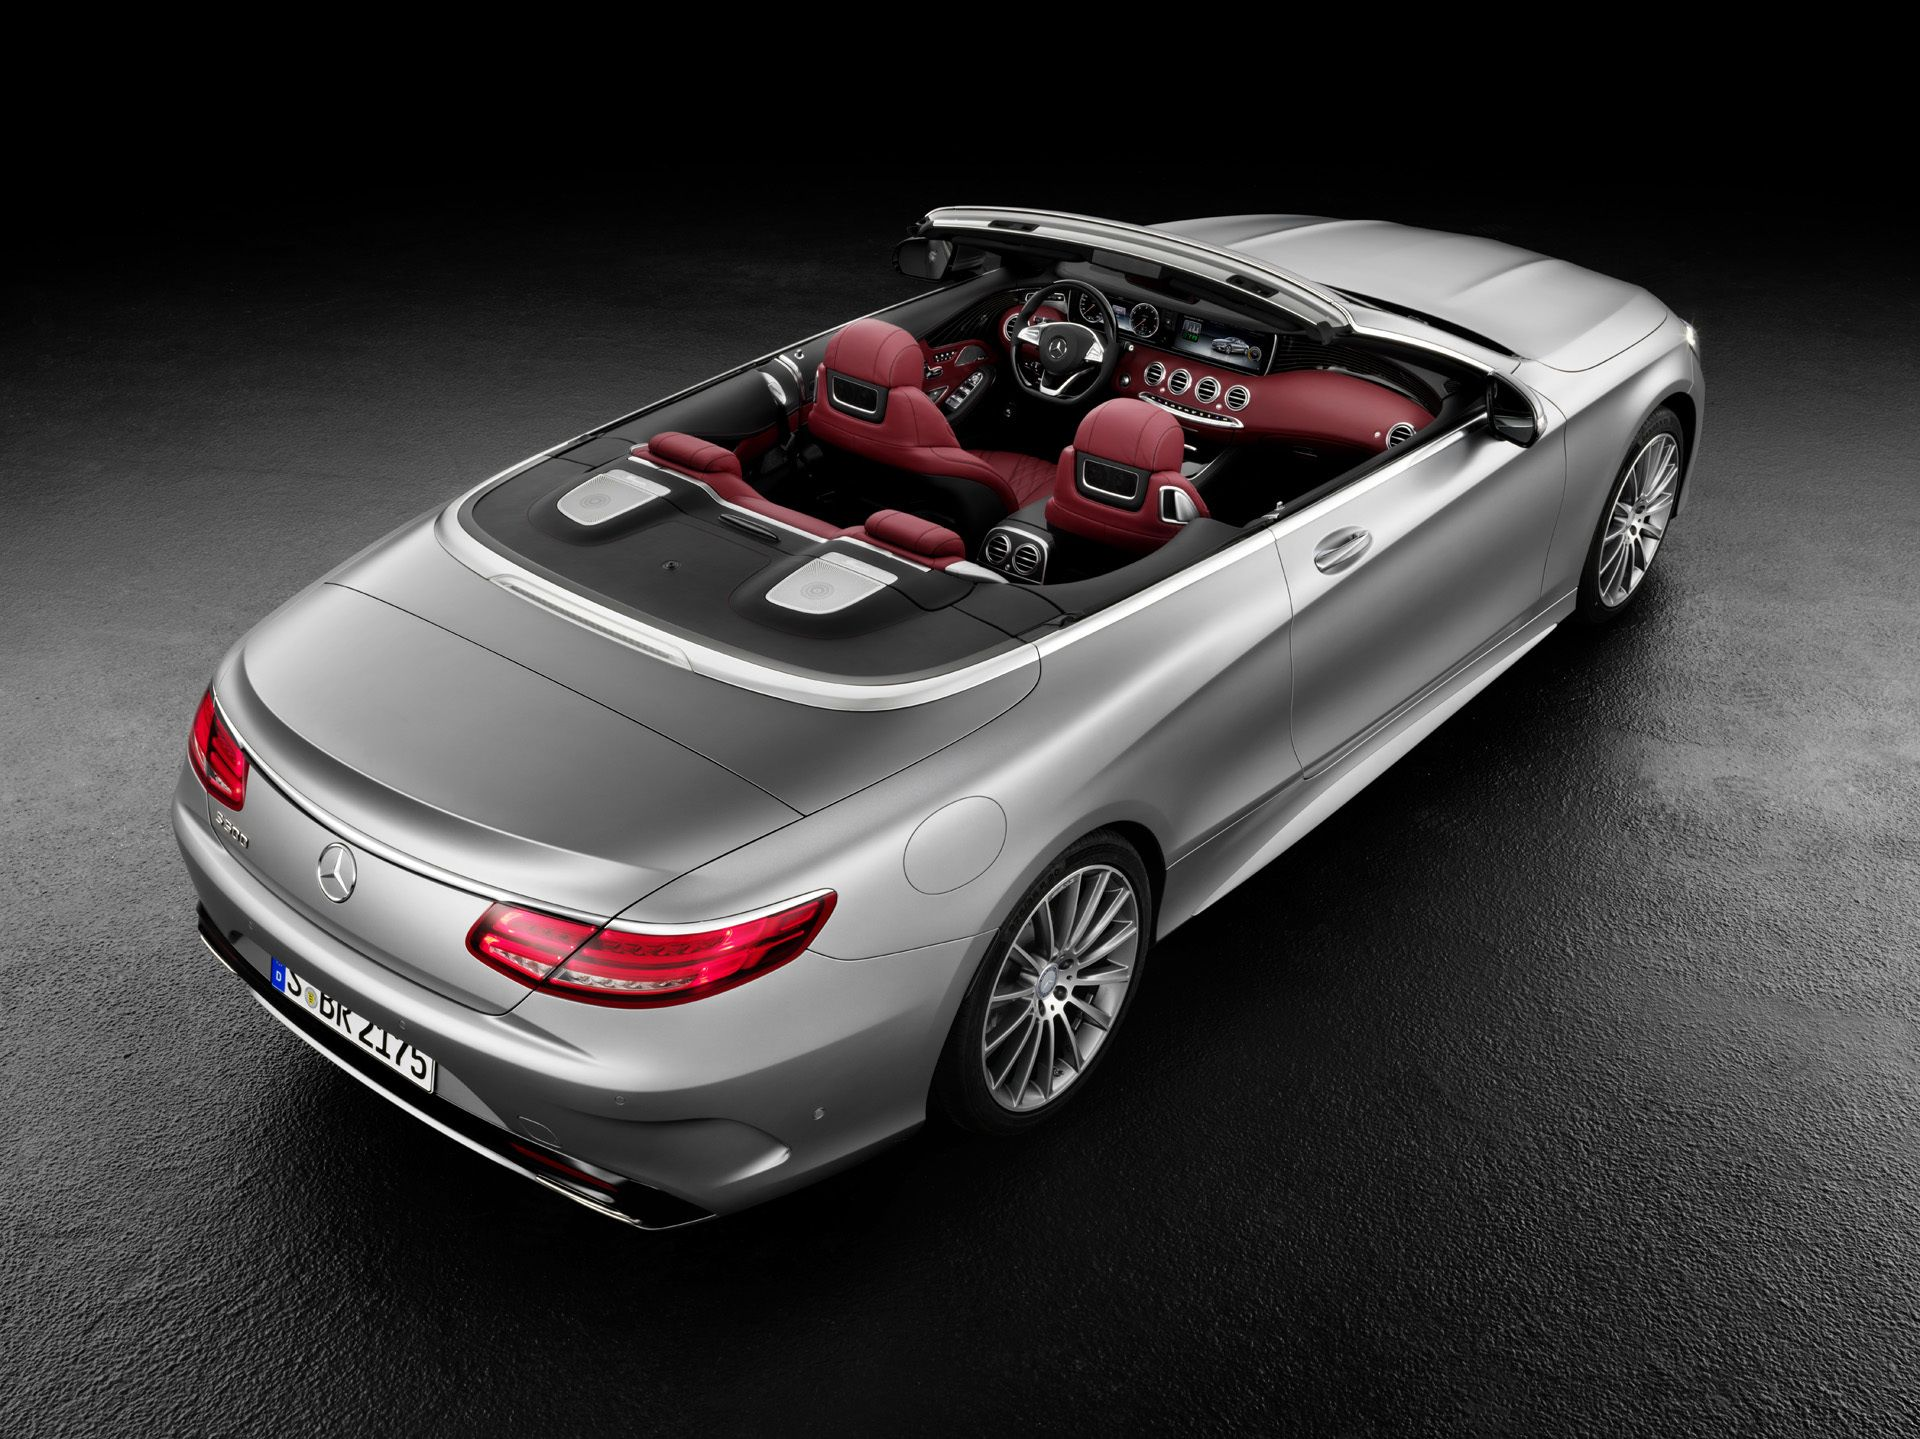 2016 Mercedes Benz Cuts Top Off S Cl To Make New Cabriolet